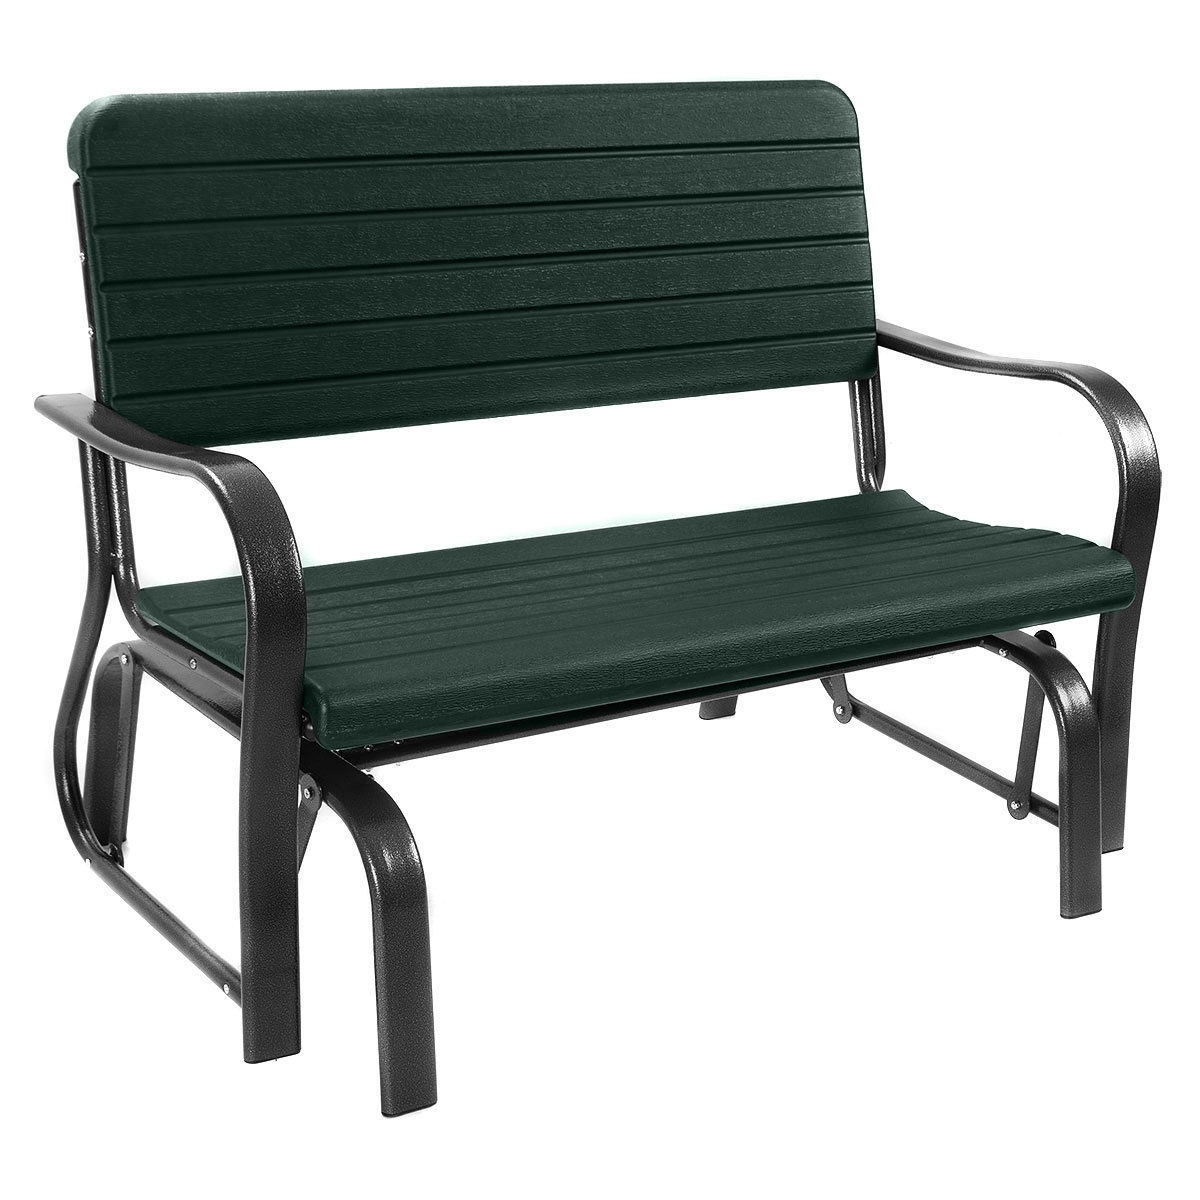 Best And Newest Rocking Love Seats Glider Swing Benches With Sturdy Frame Throughout Outdoor Patio Steel Swing Bench Loveseat (View 9 of 25)